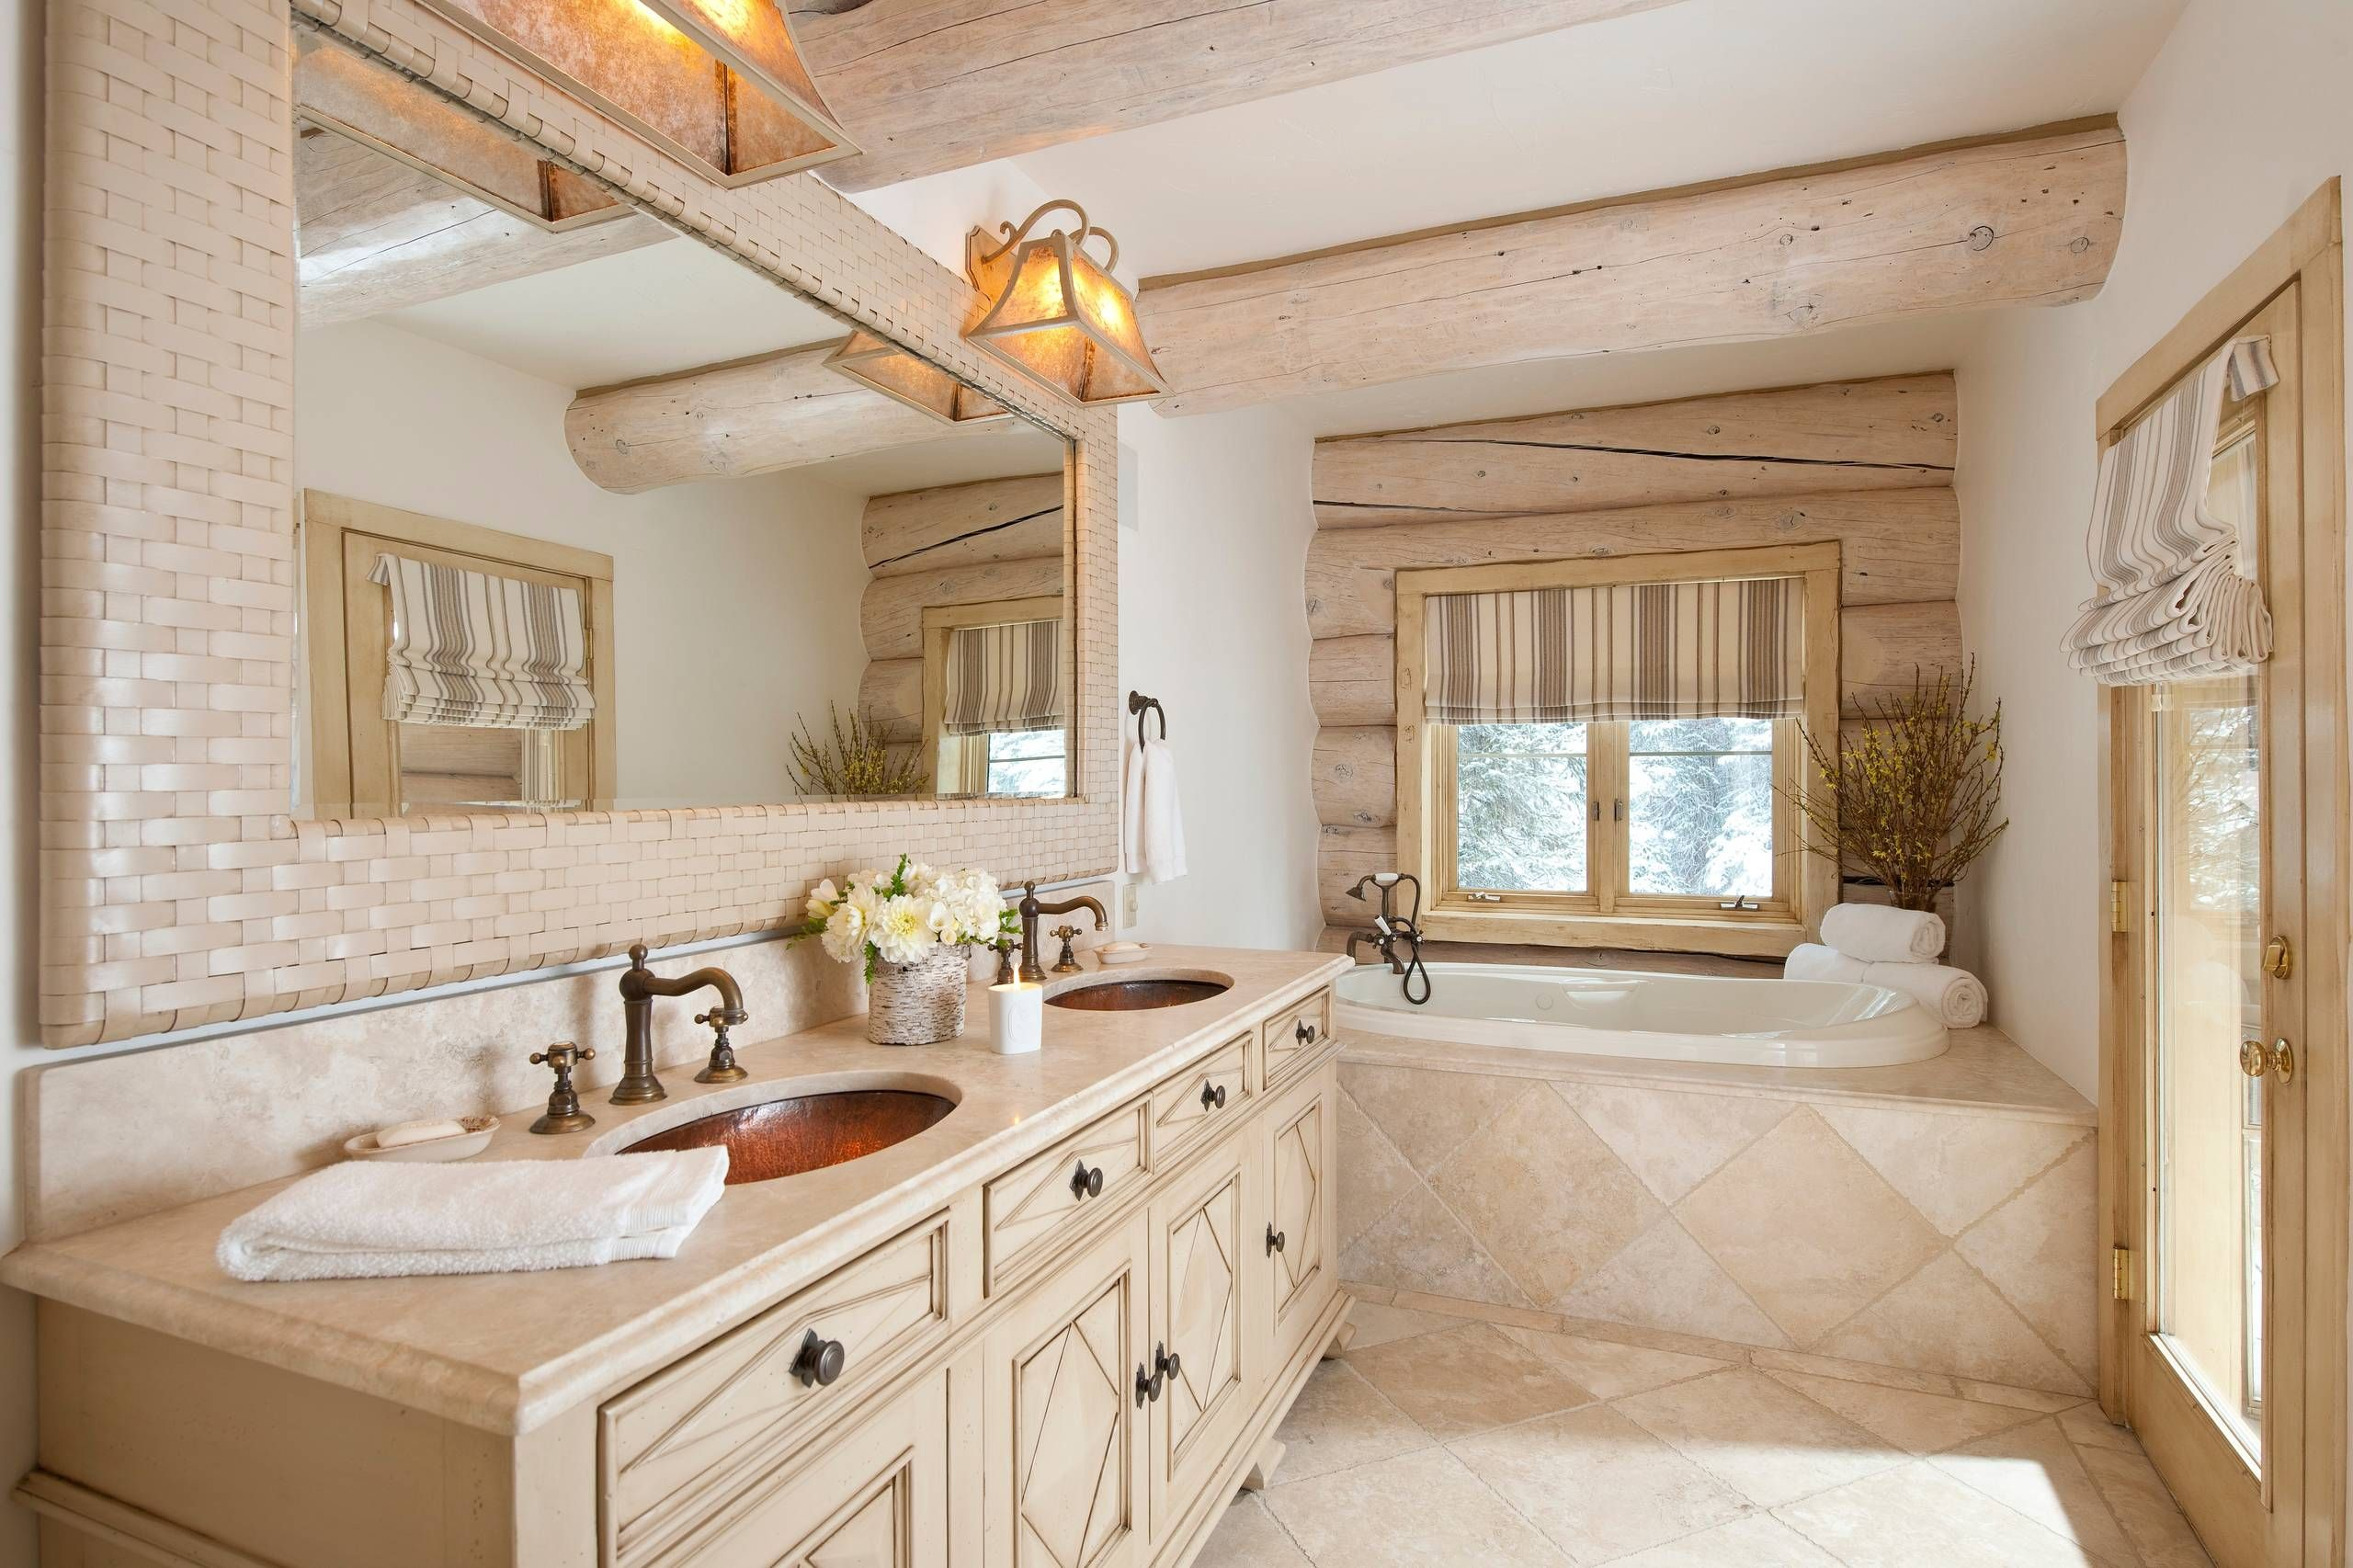 Bathroom Rustic Bathroom Designs Diy Rustic Bathroom Ideas Cream Floor And White Wall Cream Ca Rustic Bathroom Decor Country Bathroom Designs Rustic Bathrooms